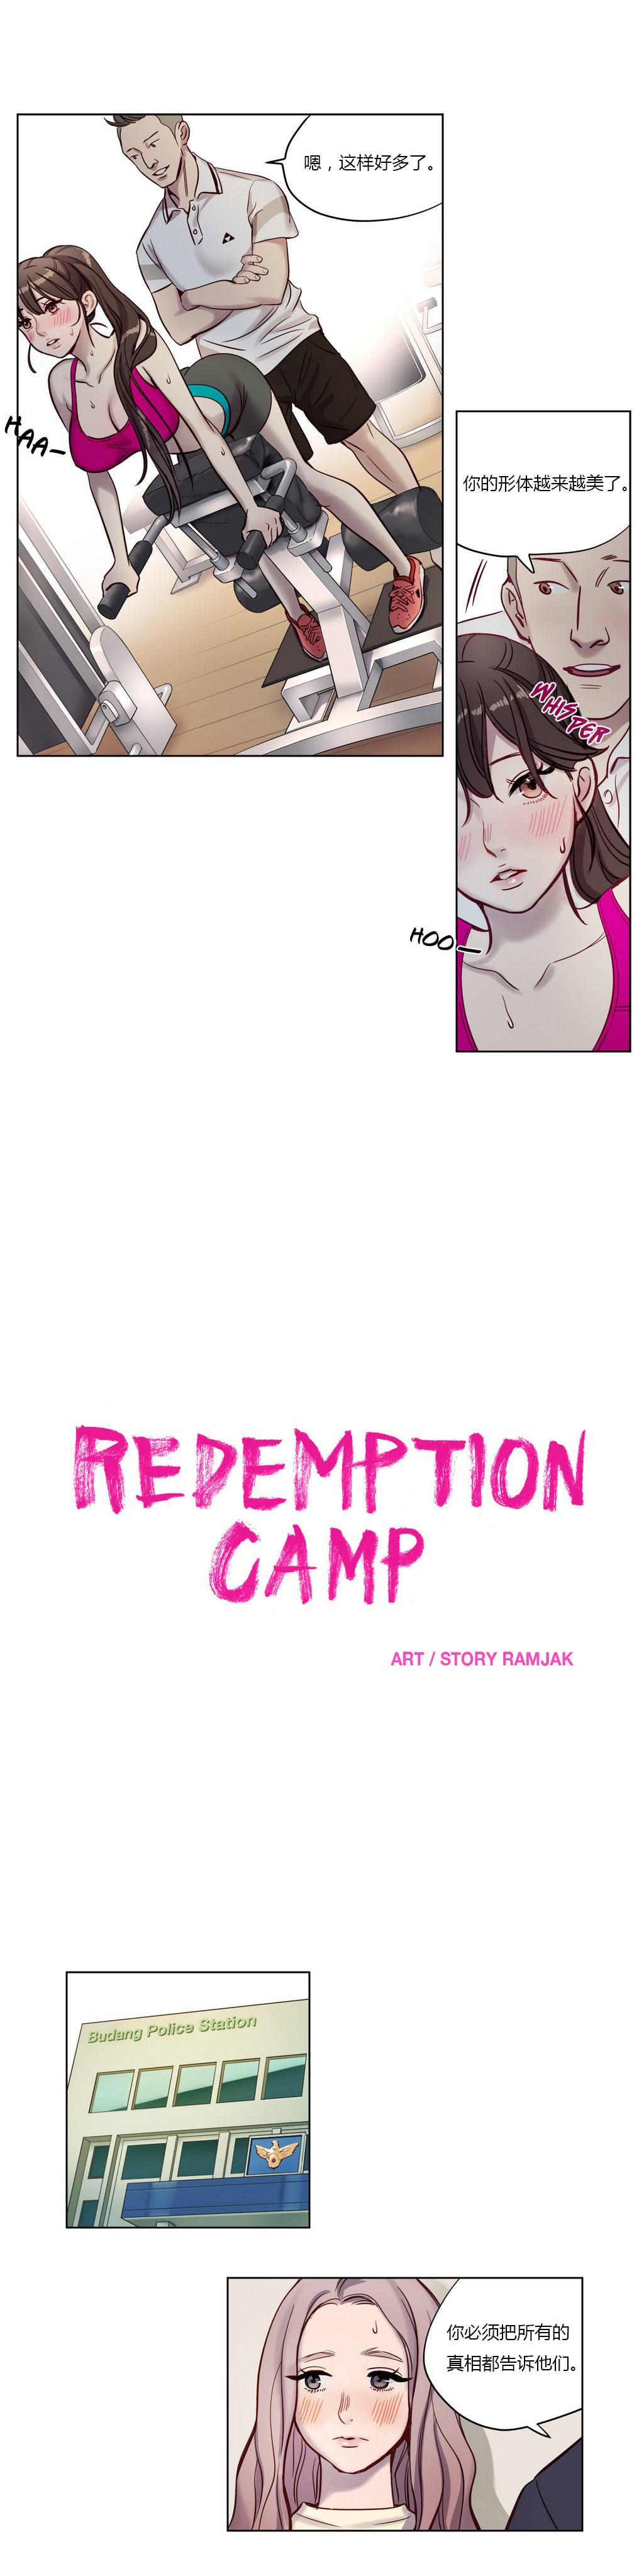 Atonement Camp Ch.0-53 114